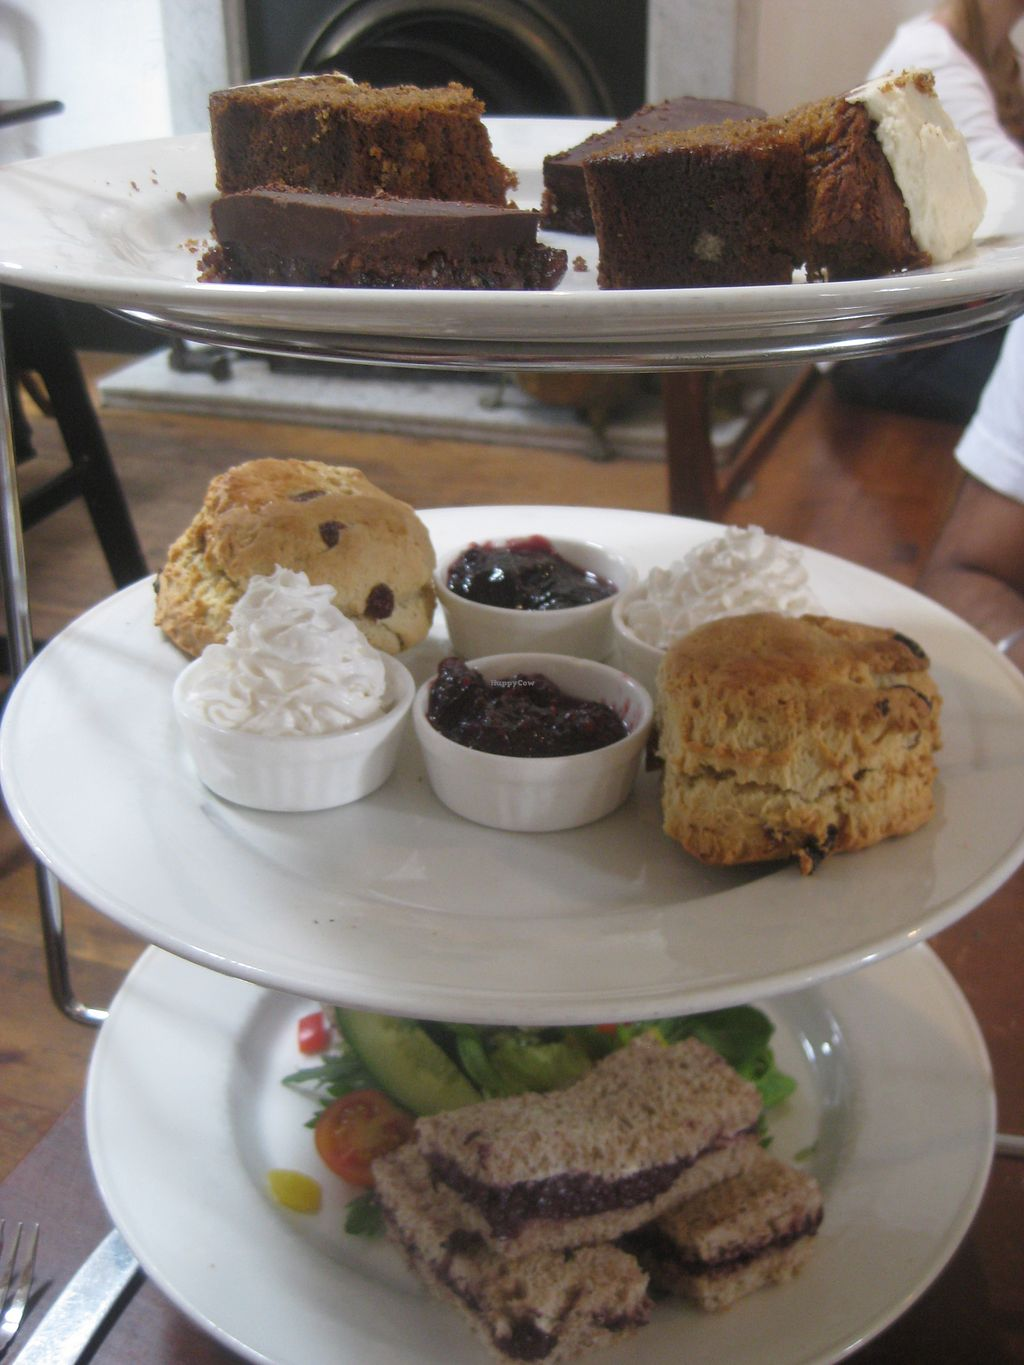 """Photo of Gillam's Tea Room  by <a href=""""/members/profile/jennyc32"""">jennyc32</a> <br/>Vegan afternoon tea <br/> August 5, 2015  - <a href='/contact/abuse/image/9676/112417'>Report</a>"""